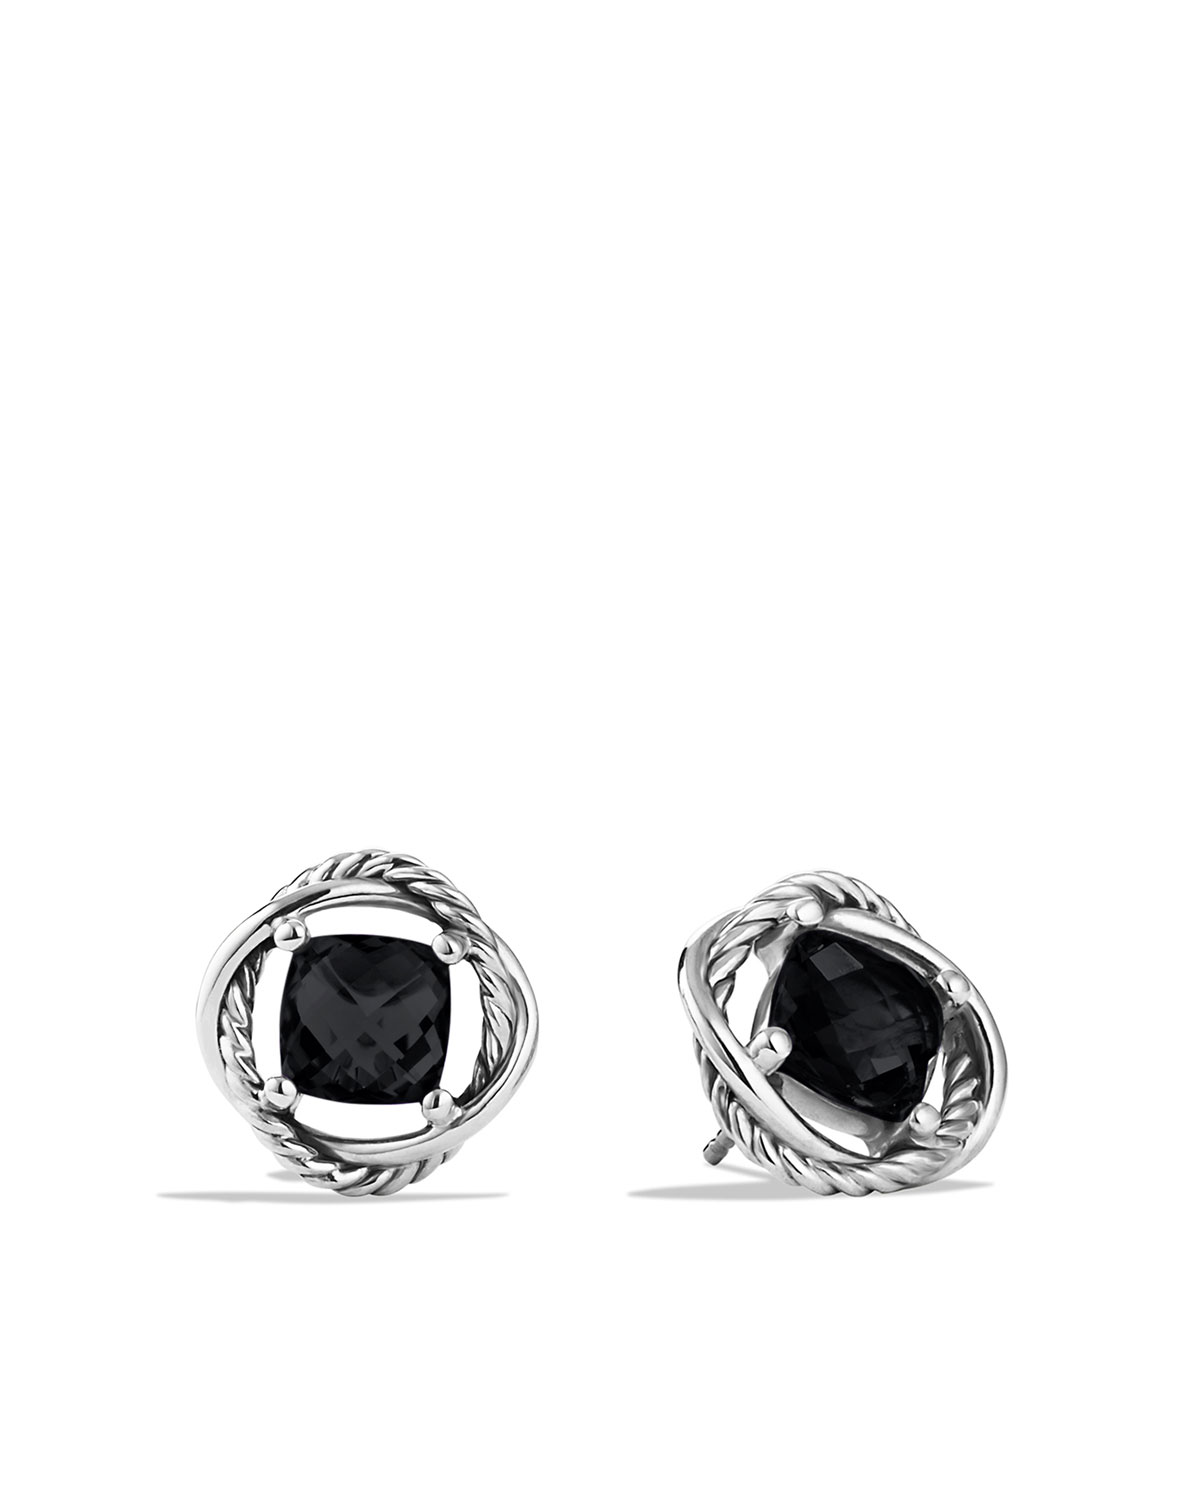 67b133e4a2467 David Yurman Infinity Earrings with Black Onyx